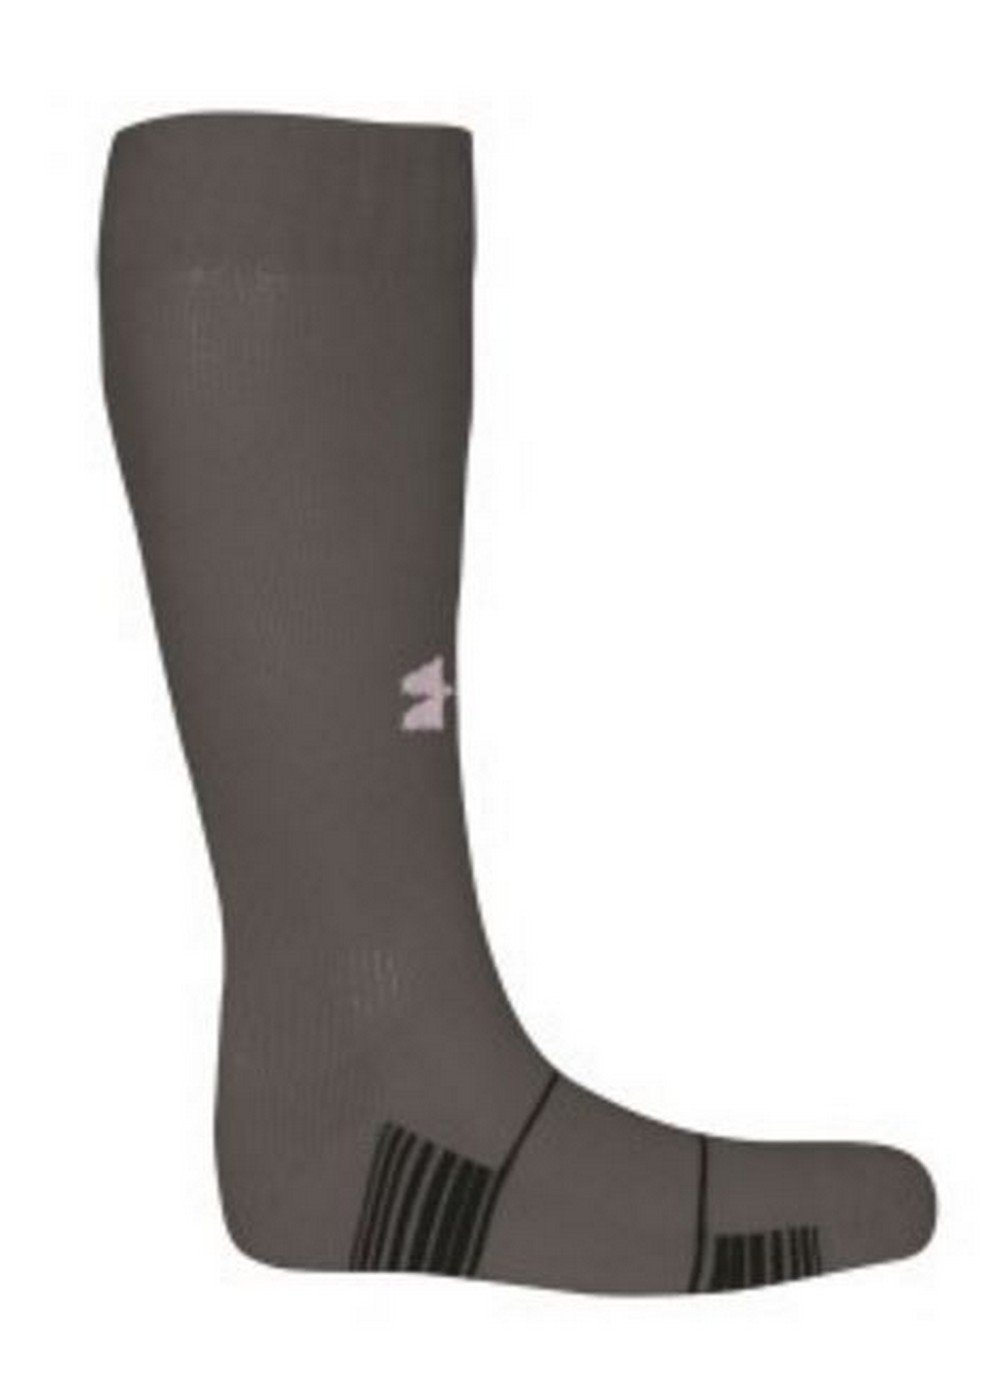 Under Armour Men's Team OTC Graphite Sock 10-13 large